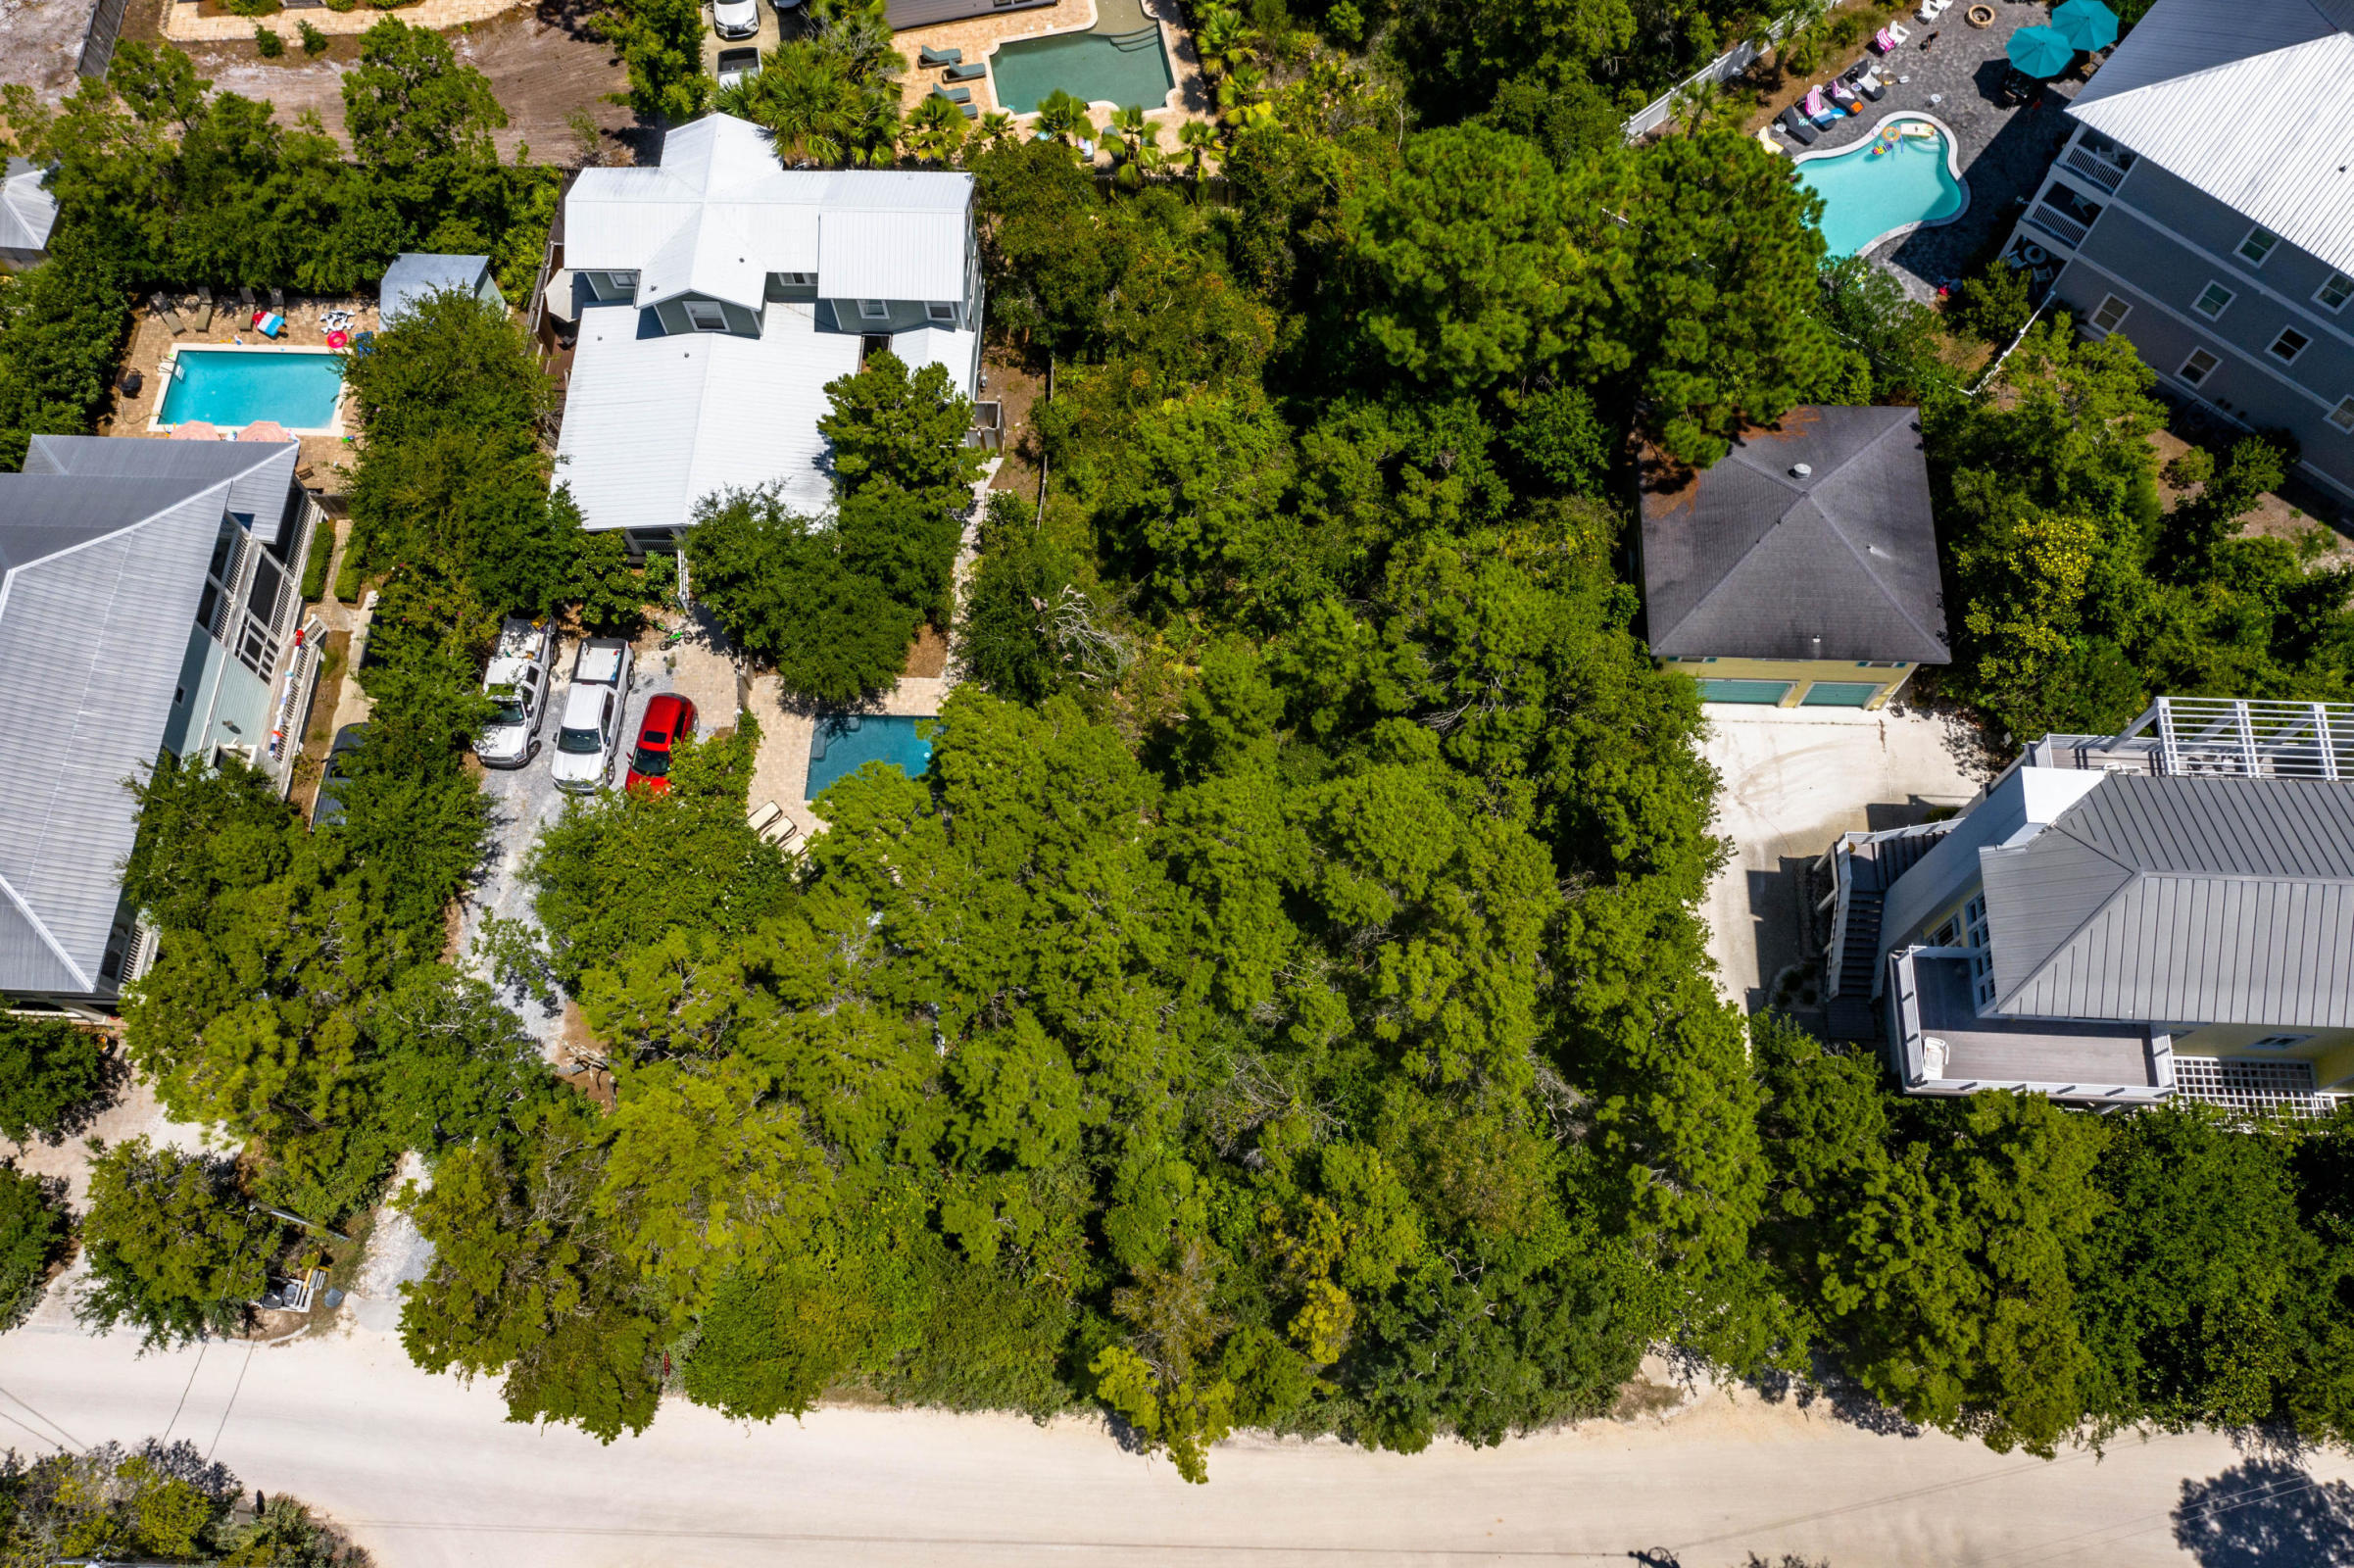 Oversized lot, 4 doors from Seaside. An exceptional opportunity to build a Seagrove dream house. Very few vacant lots remain in the wooded and desirable Seagrove neighborhood. No HOA dues, while very convenient to the popular shops and restaurants of nearby communities. There is nothing like a new home near the heart of 30A. At 67'x150', this lot yields nearly a quarter acre of space. The property will hold a large rental home, or a legacy beach house with all the amenities 30A beachgoers have come to demand. The maturely wooded lot also gives you the option to build for privacy, should you desire.